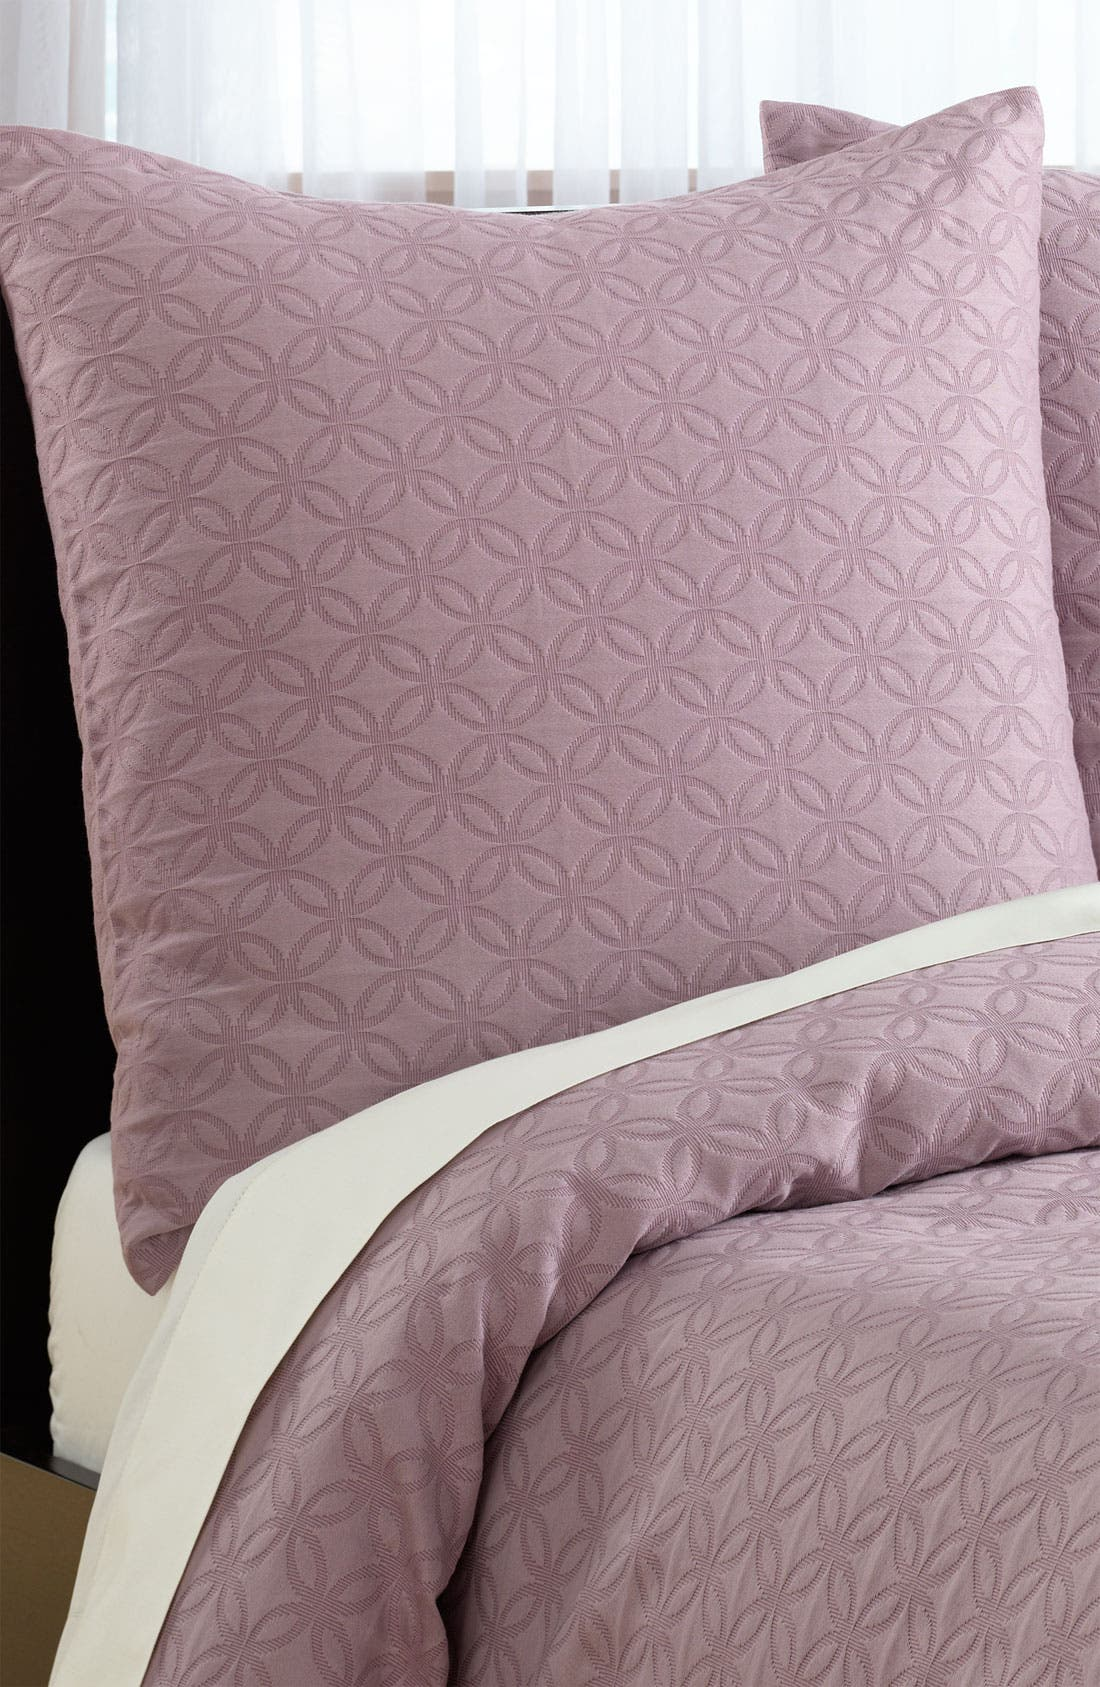 Alternate Image 1 Selected - Nordstrom at Home 'Trellis' Matelassé Euro Sham